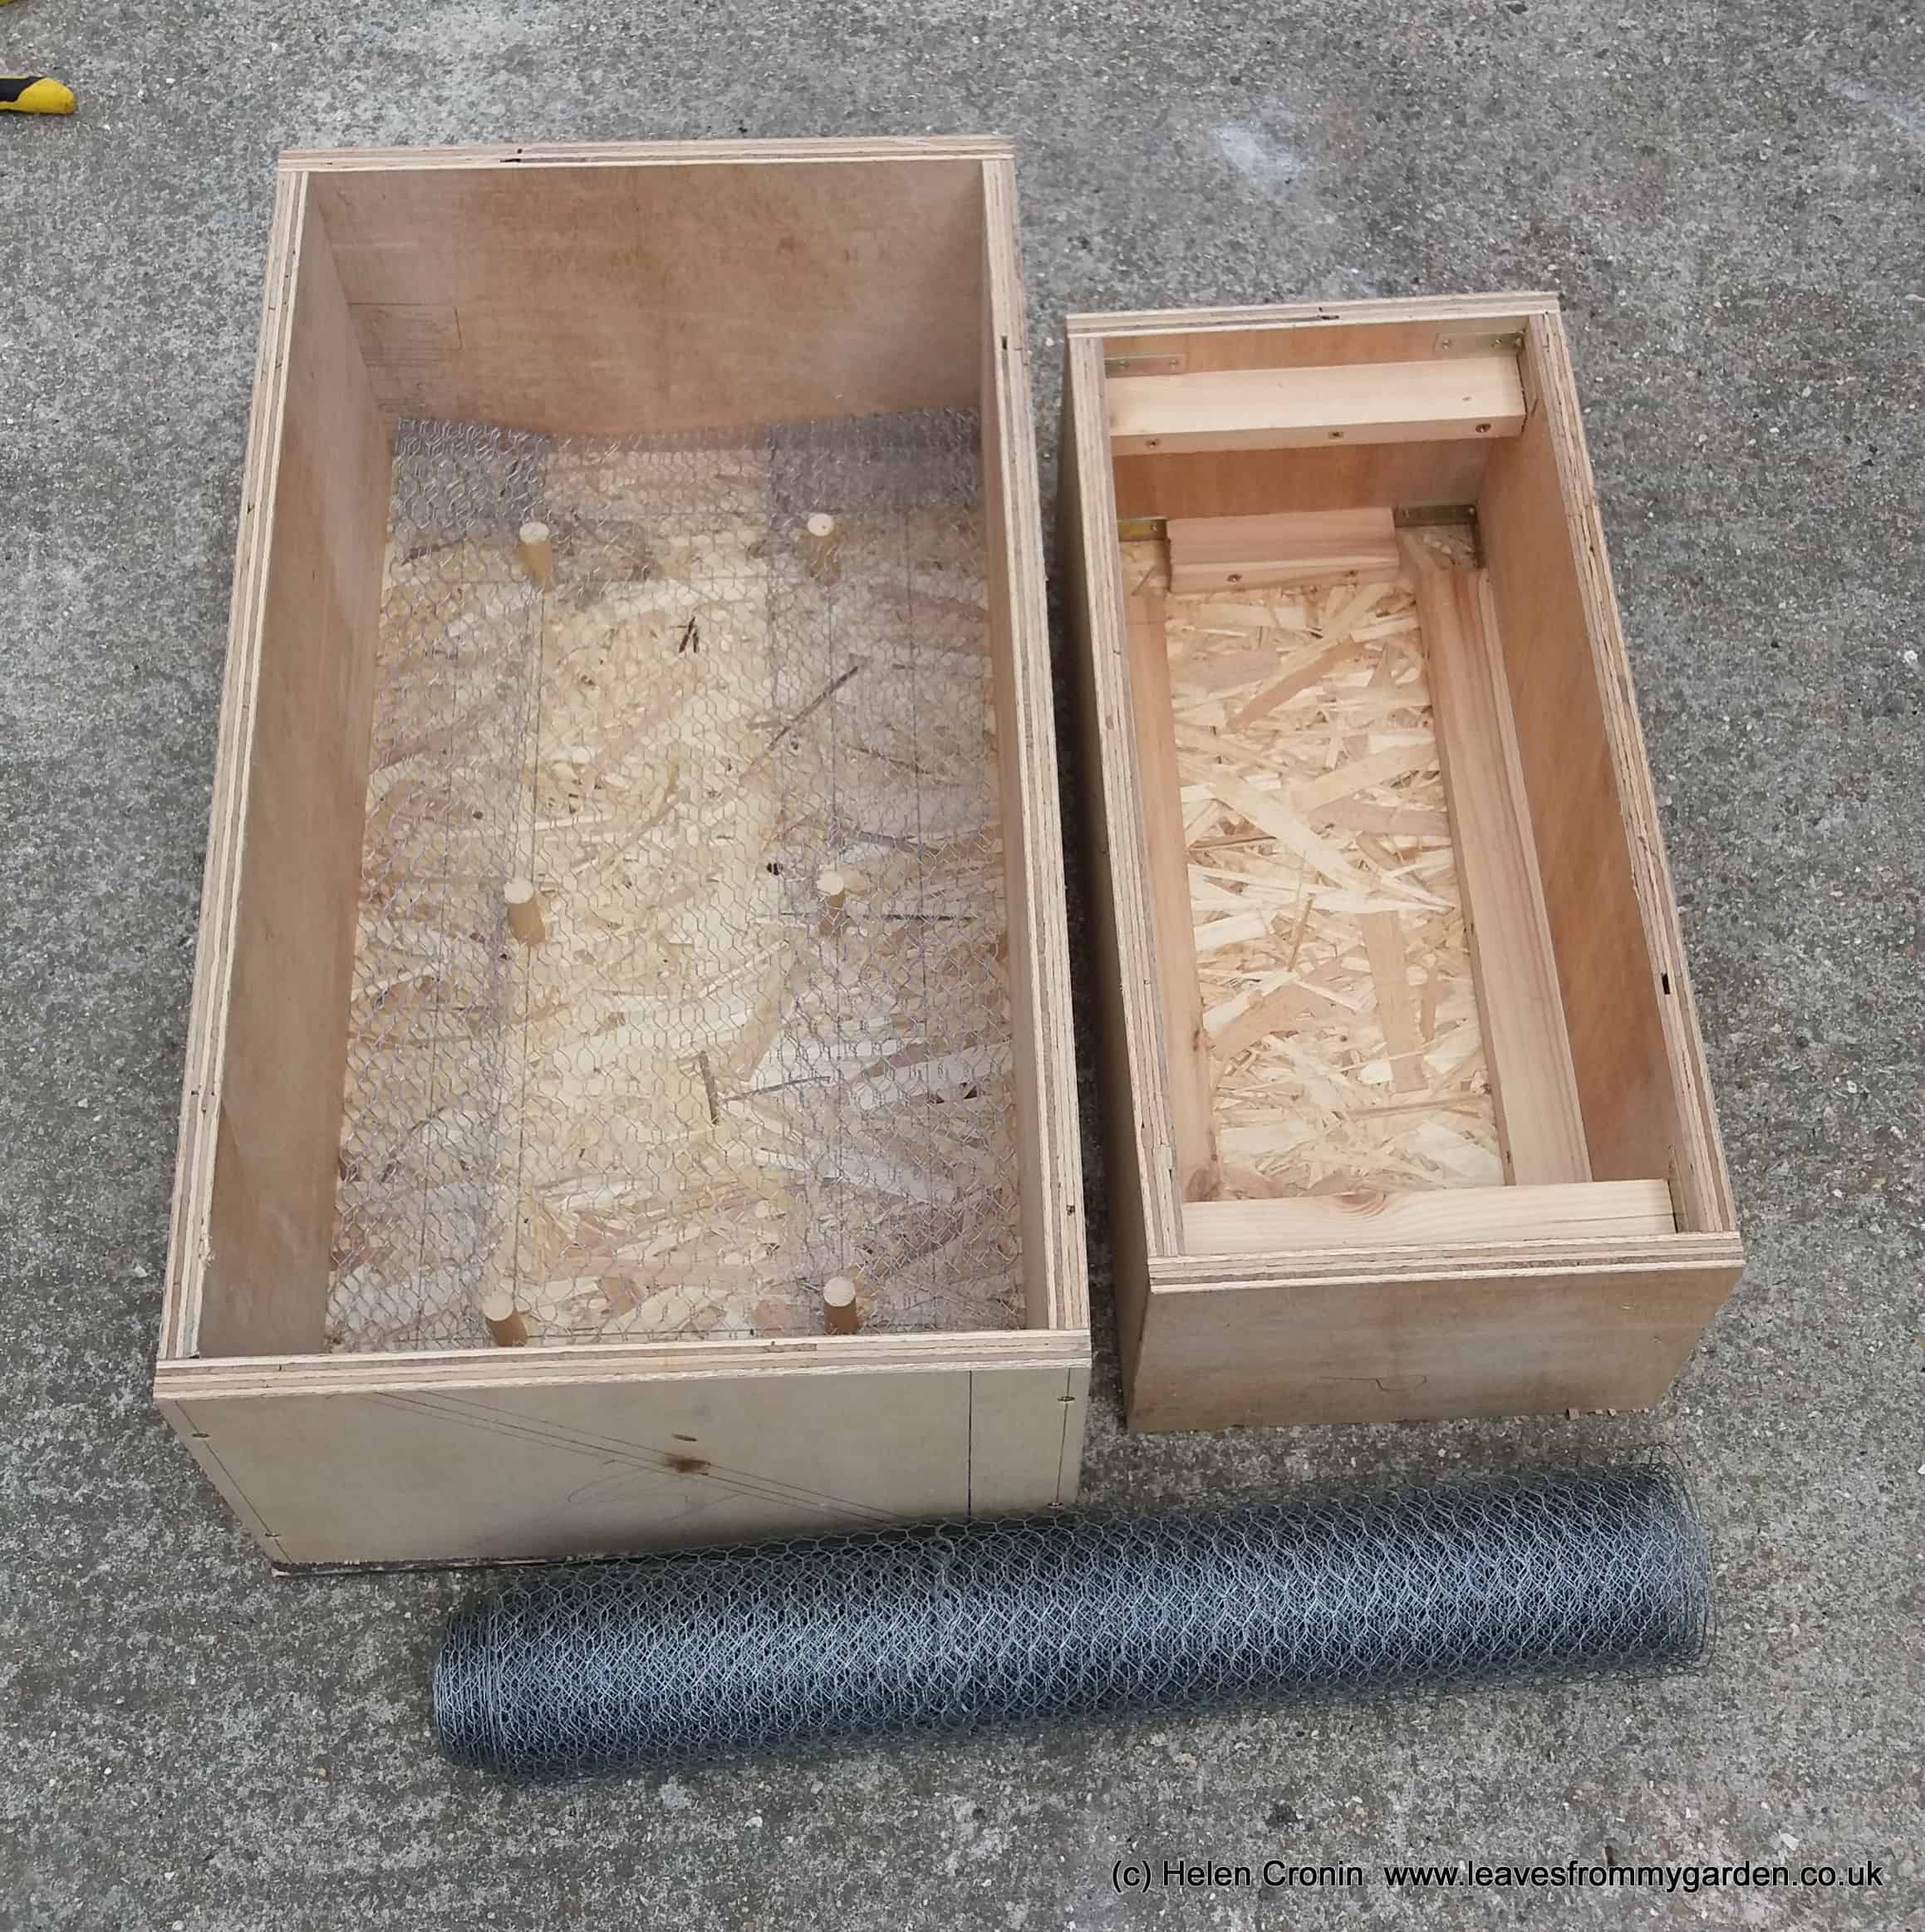 Wooden formers for making hypertufa trough at www.leavesfrommygarden.co.uk